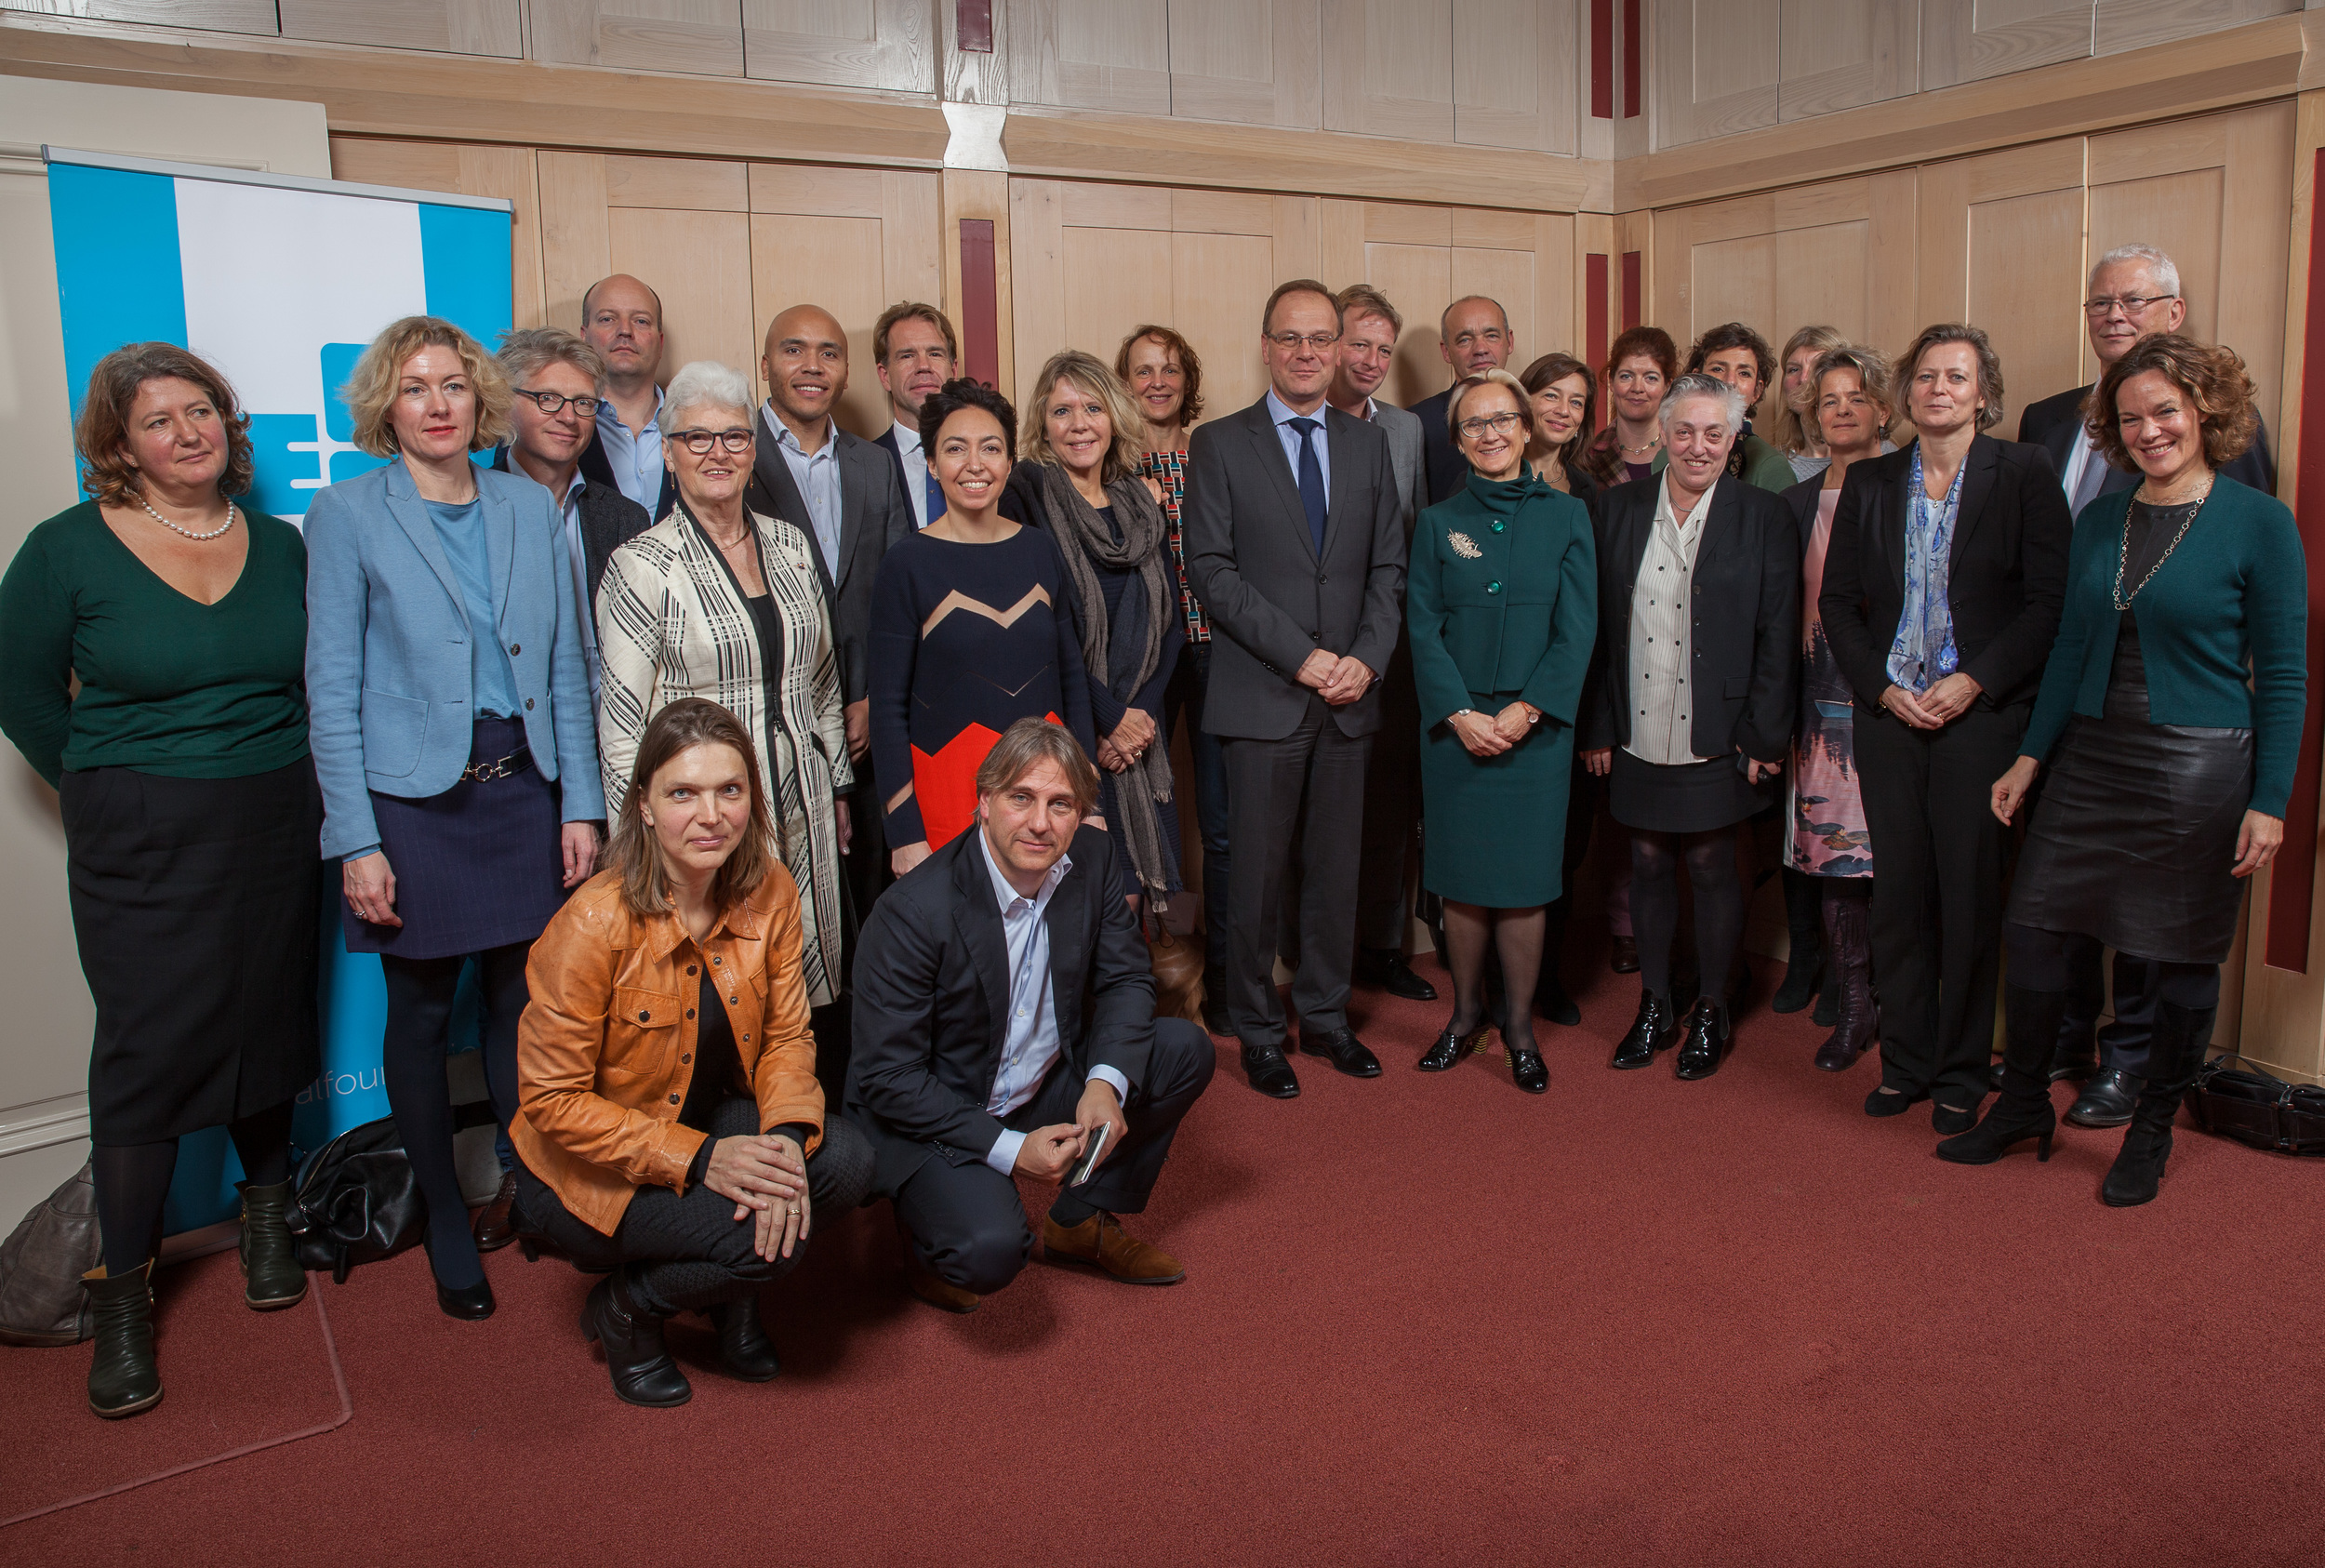 Tibor Navracsics and Katherine Watson with the stakeholders from the Dutch arts and culture sector. Photo by Xander Remkes.